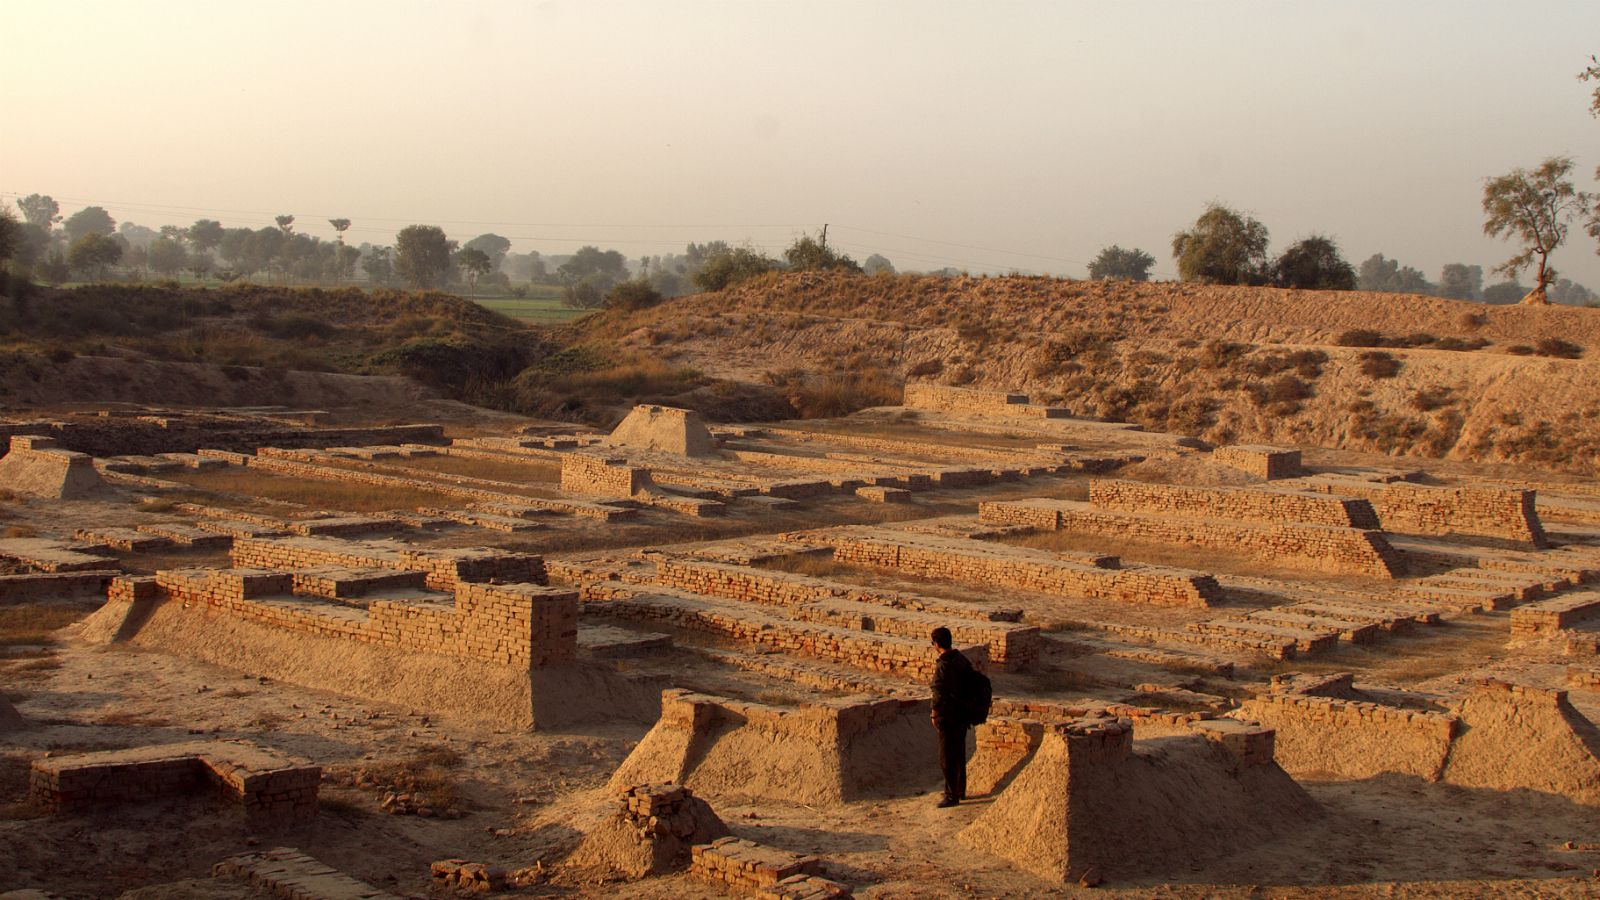 harrapan civilisation The extinction of harappan civilization (along with mohenjo-daro, lothal, kalibangan) is a very interesting mystery yet to solve even by modern technology there are many speculations around the extinction of the then highly advanced civilization of the bronze age.